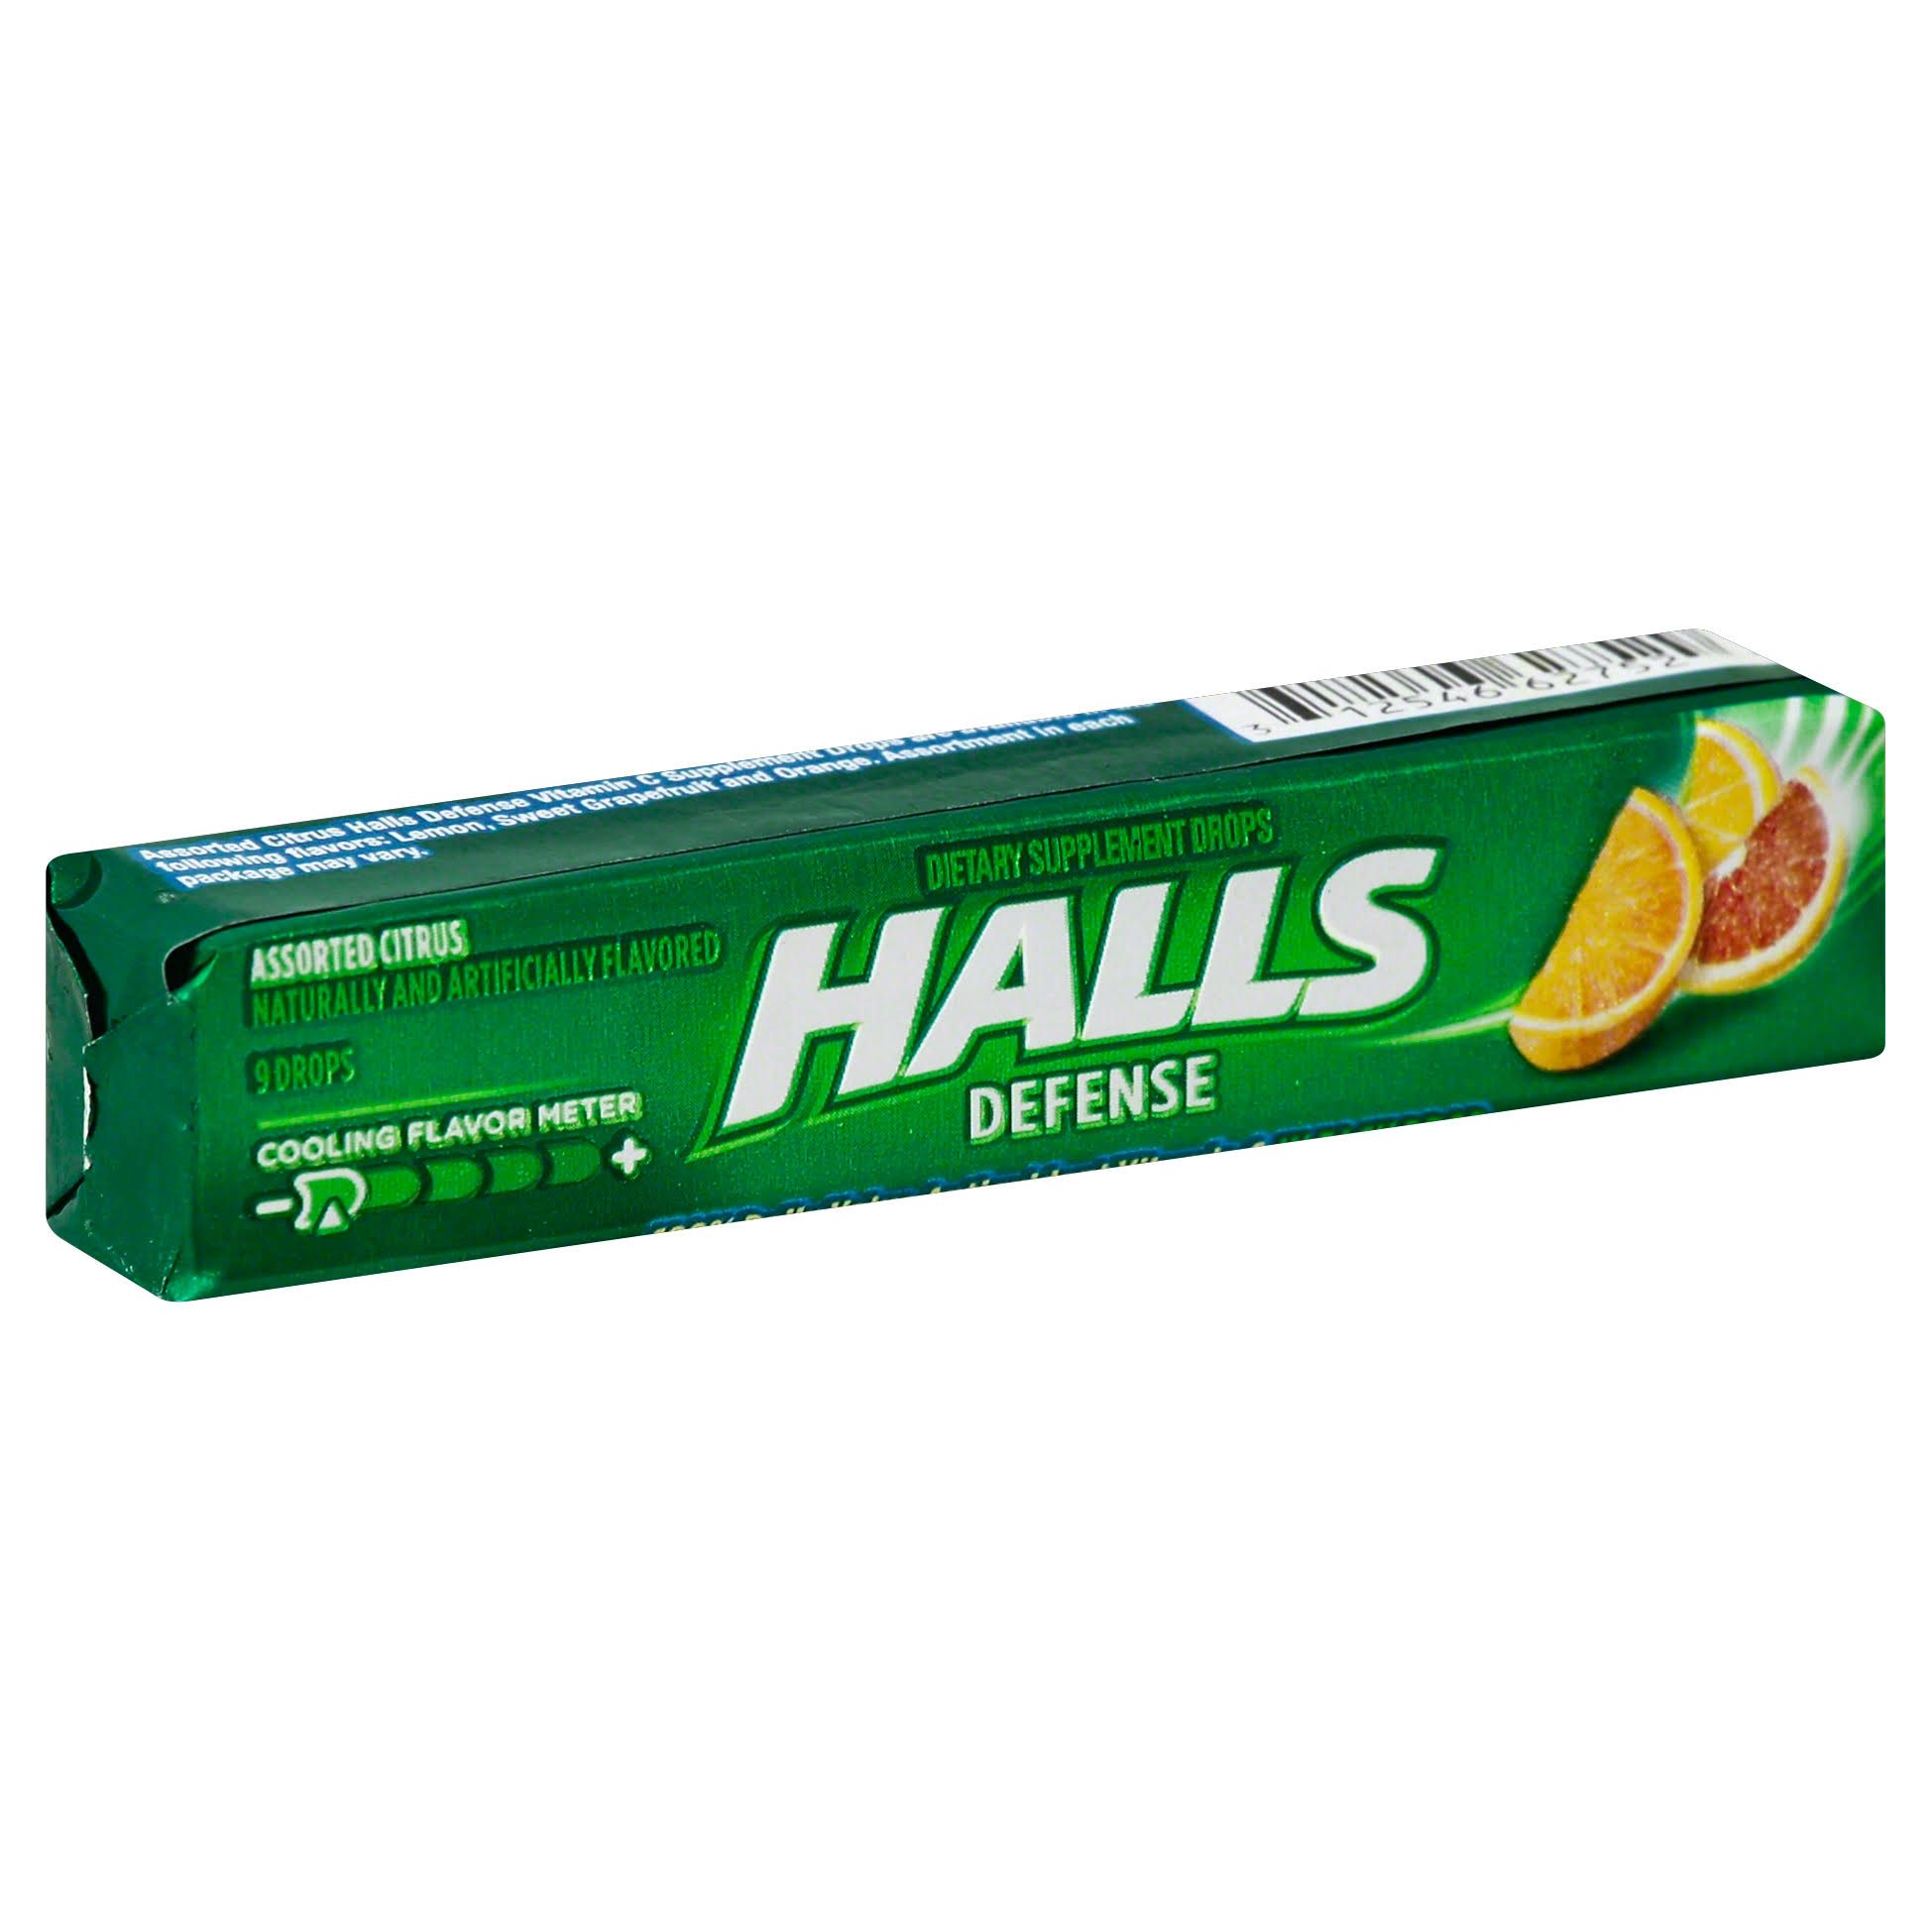 Halls Defence Vitamin C Assorted Citrus - 9-Drop Count